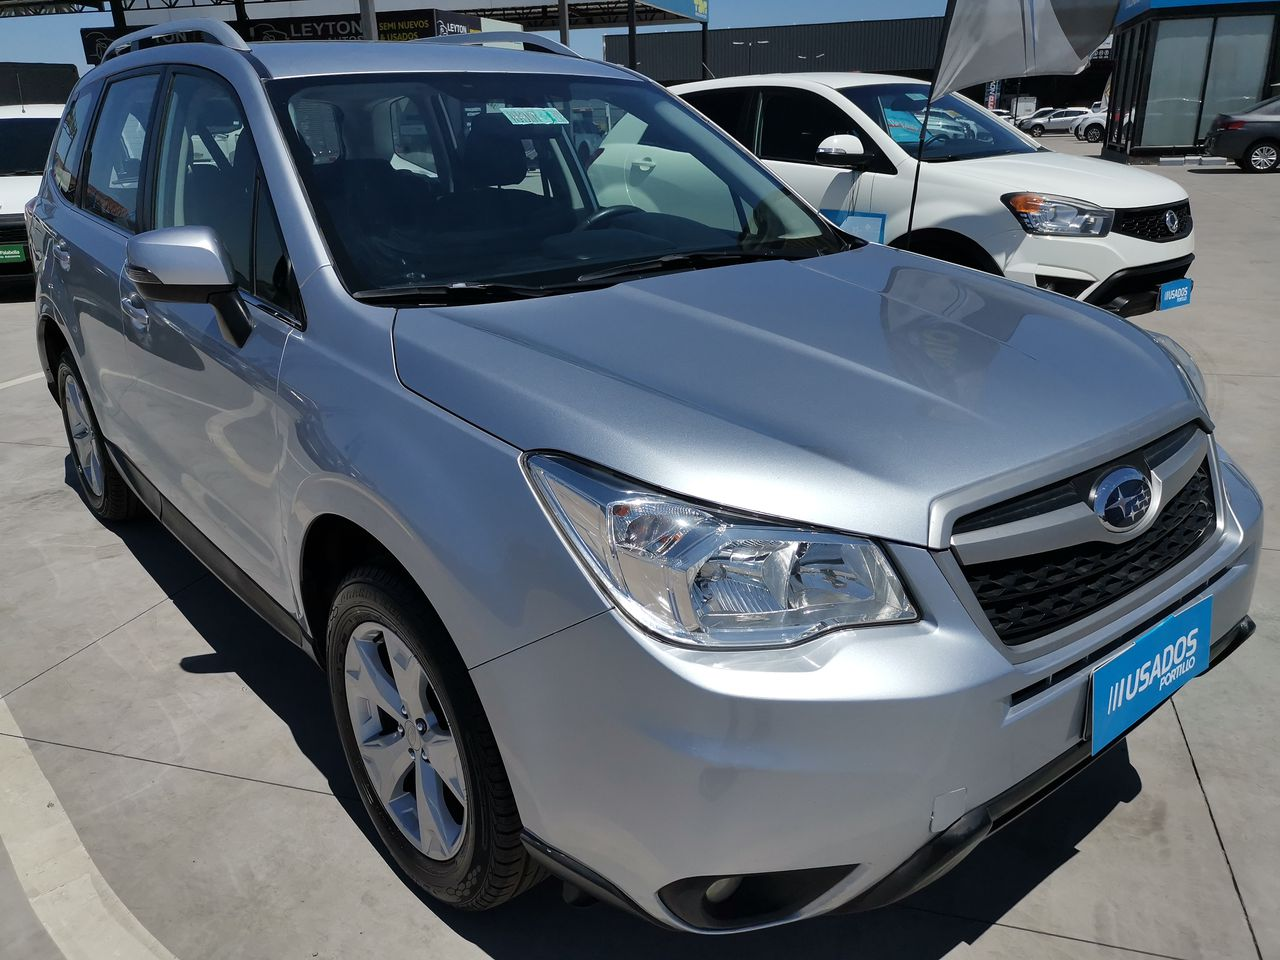 Subaru All New Forester 2.0 2016  Usado en Automotriz Portillo